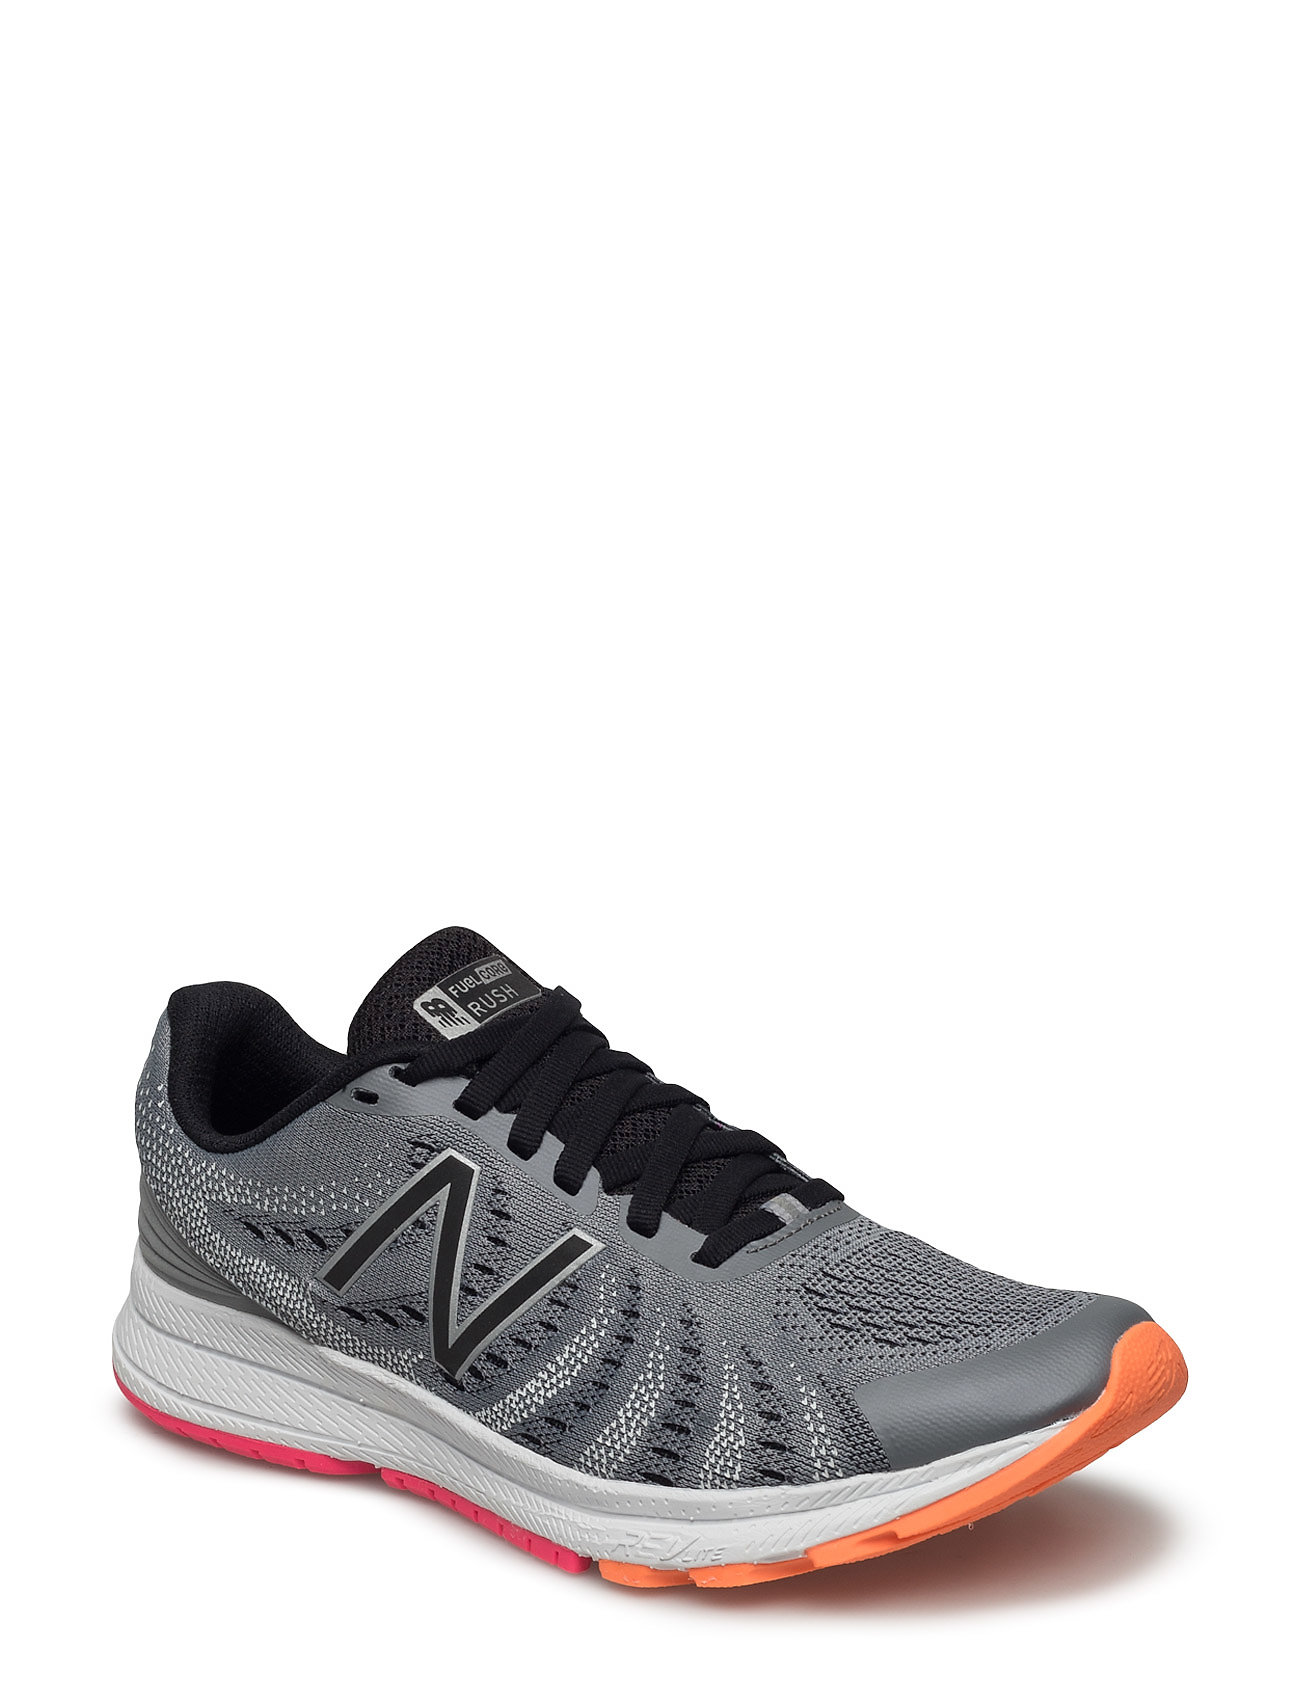 Wrushgo3 New Balance Sports sko til Damer i